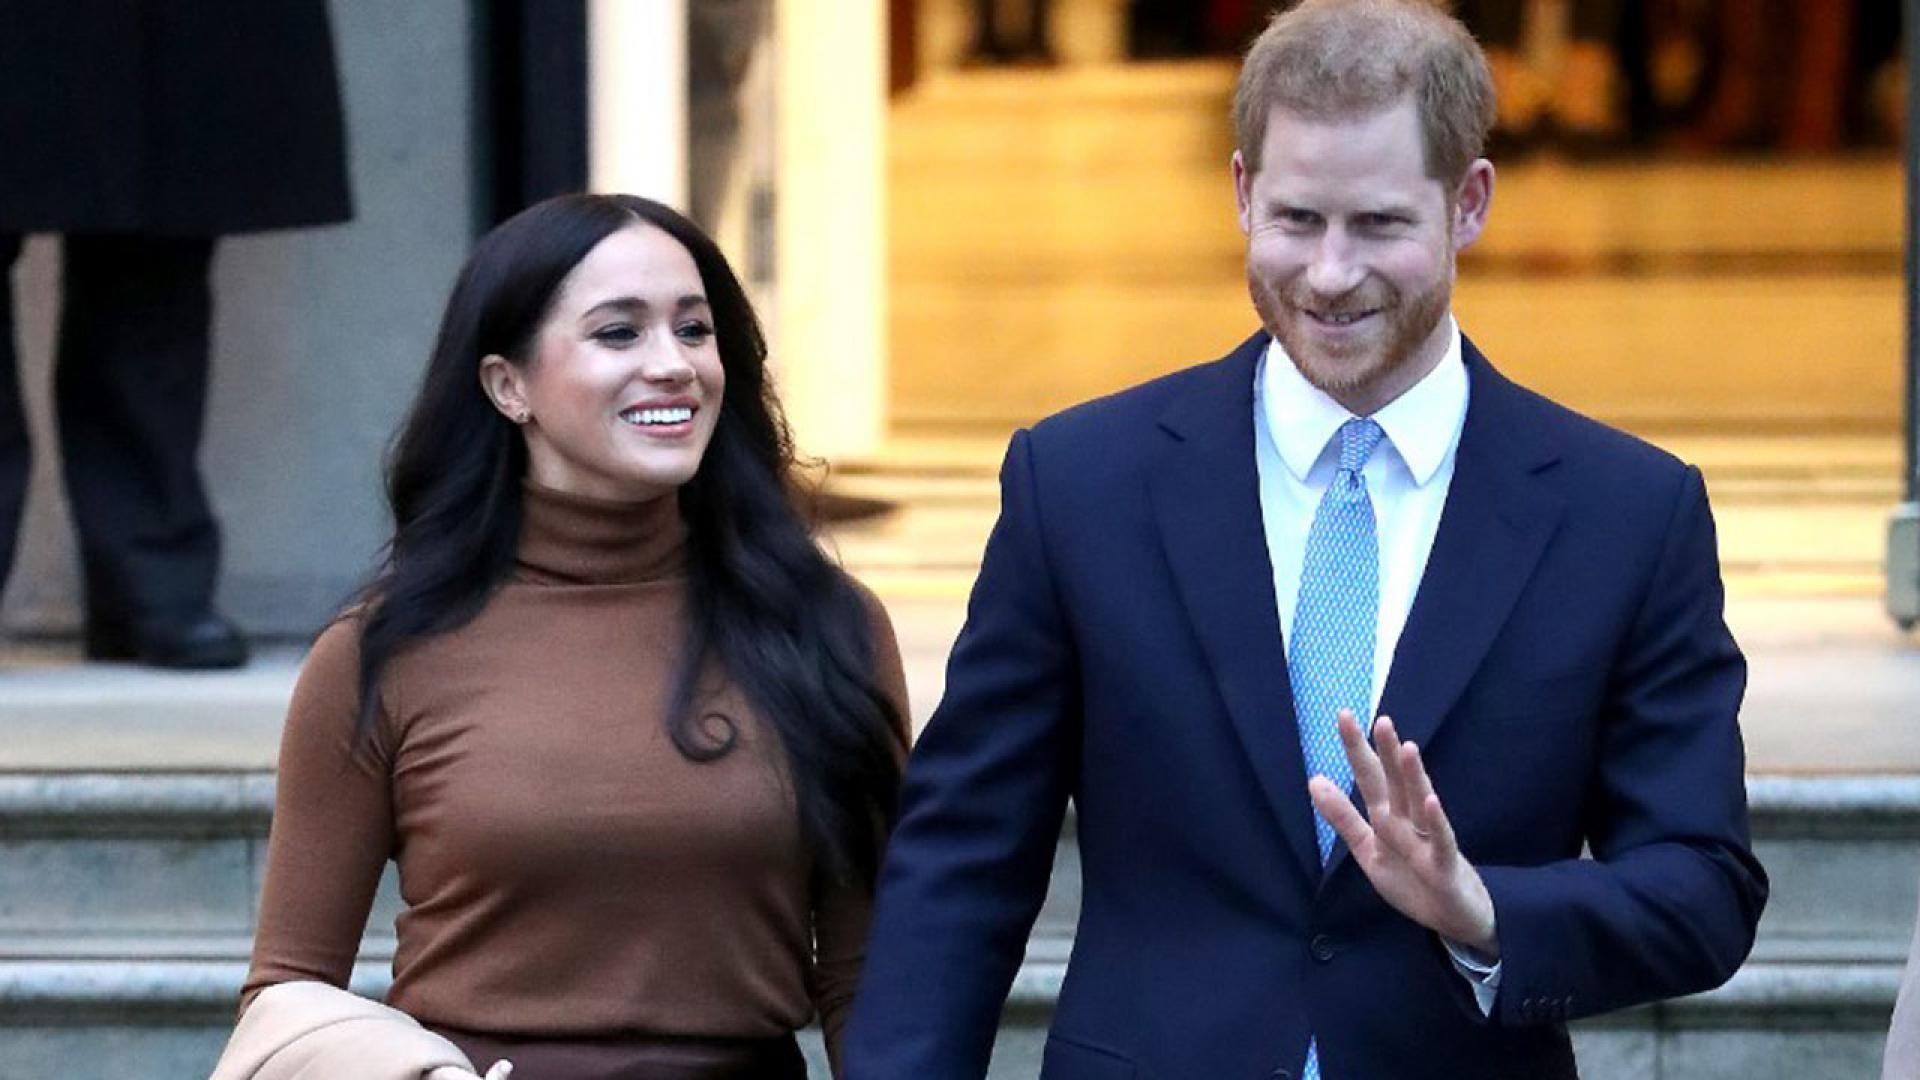 """Prince Harry and Meghan Markle are """"stepping back."""" What does that mean?"""